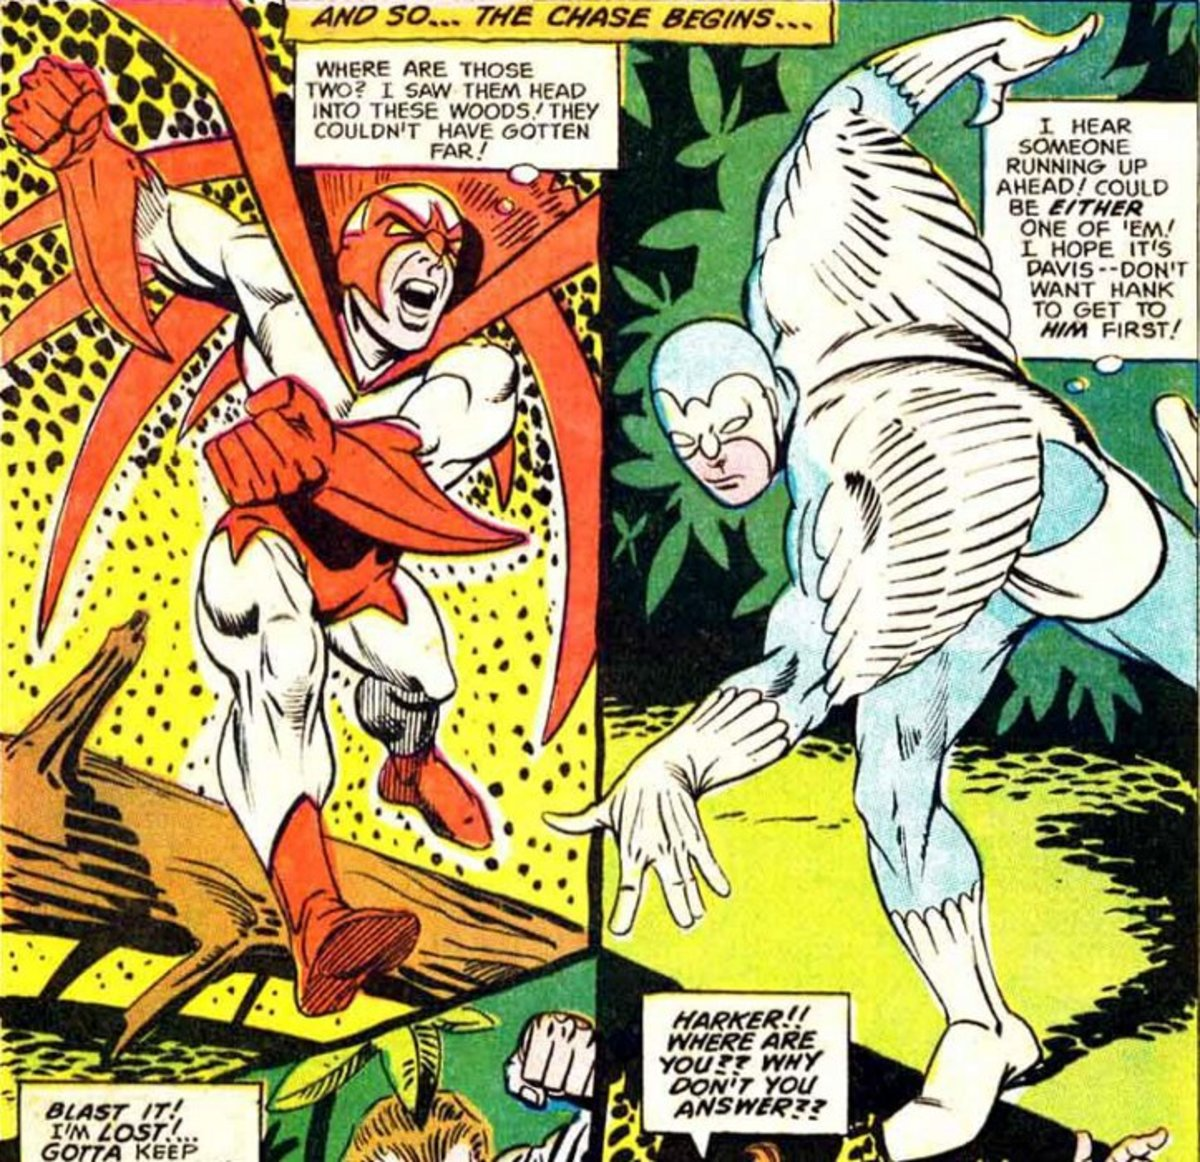 Hawk and Dove by Steve Ditko.